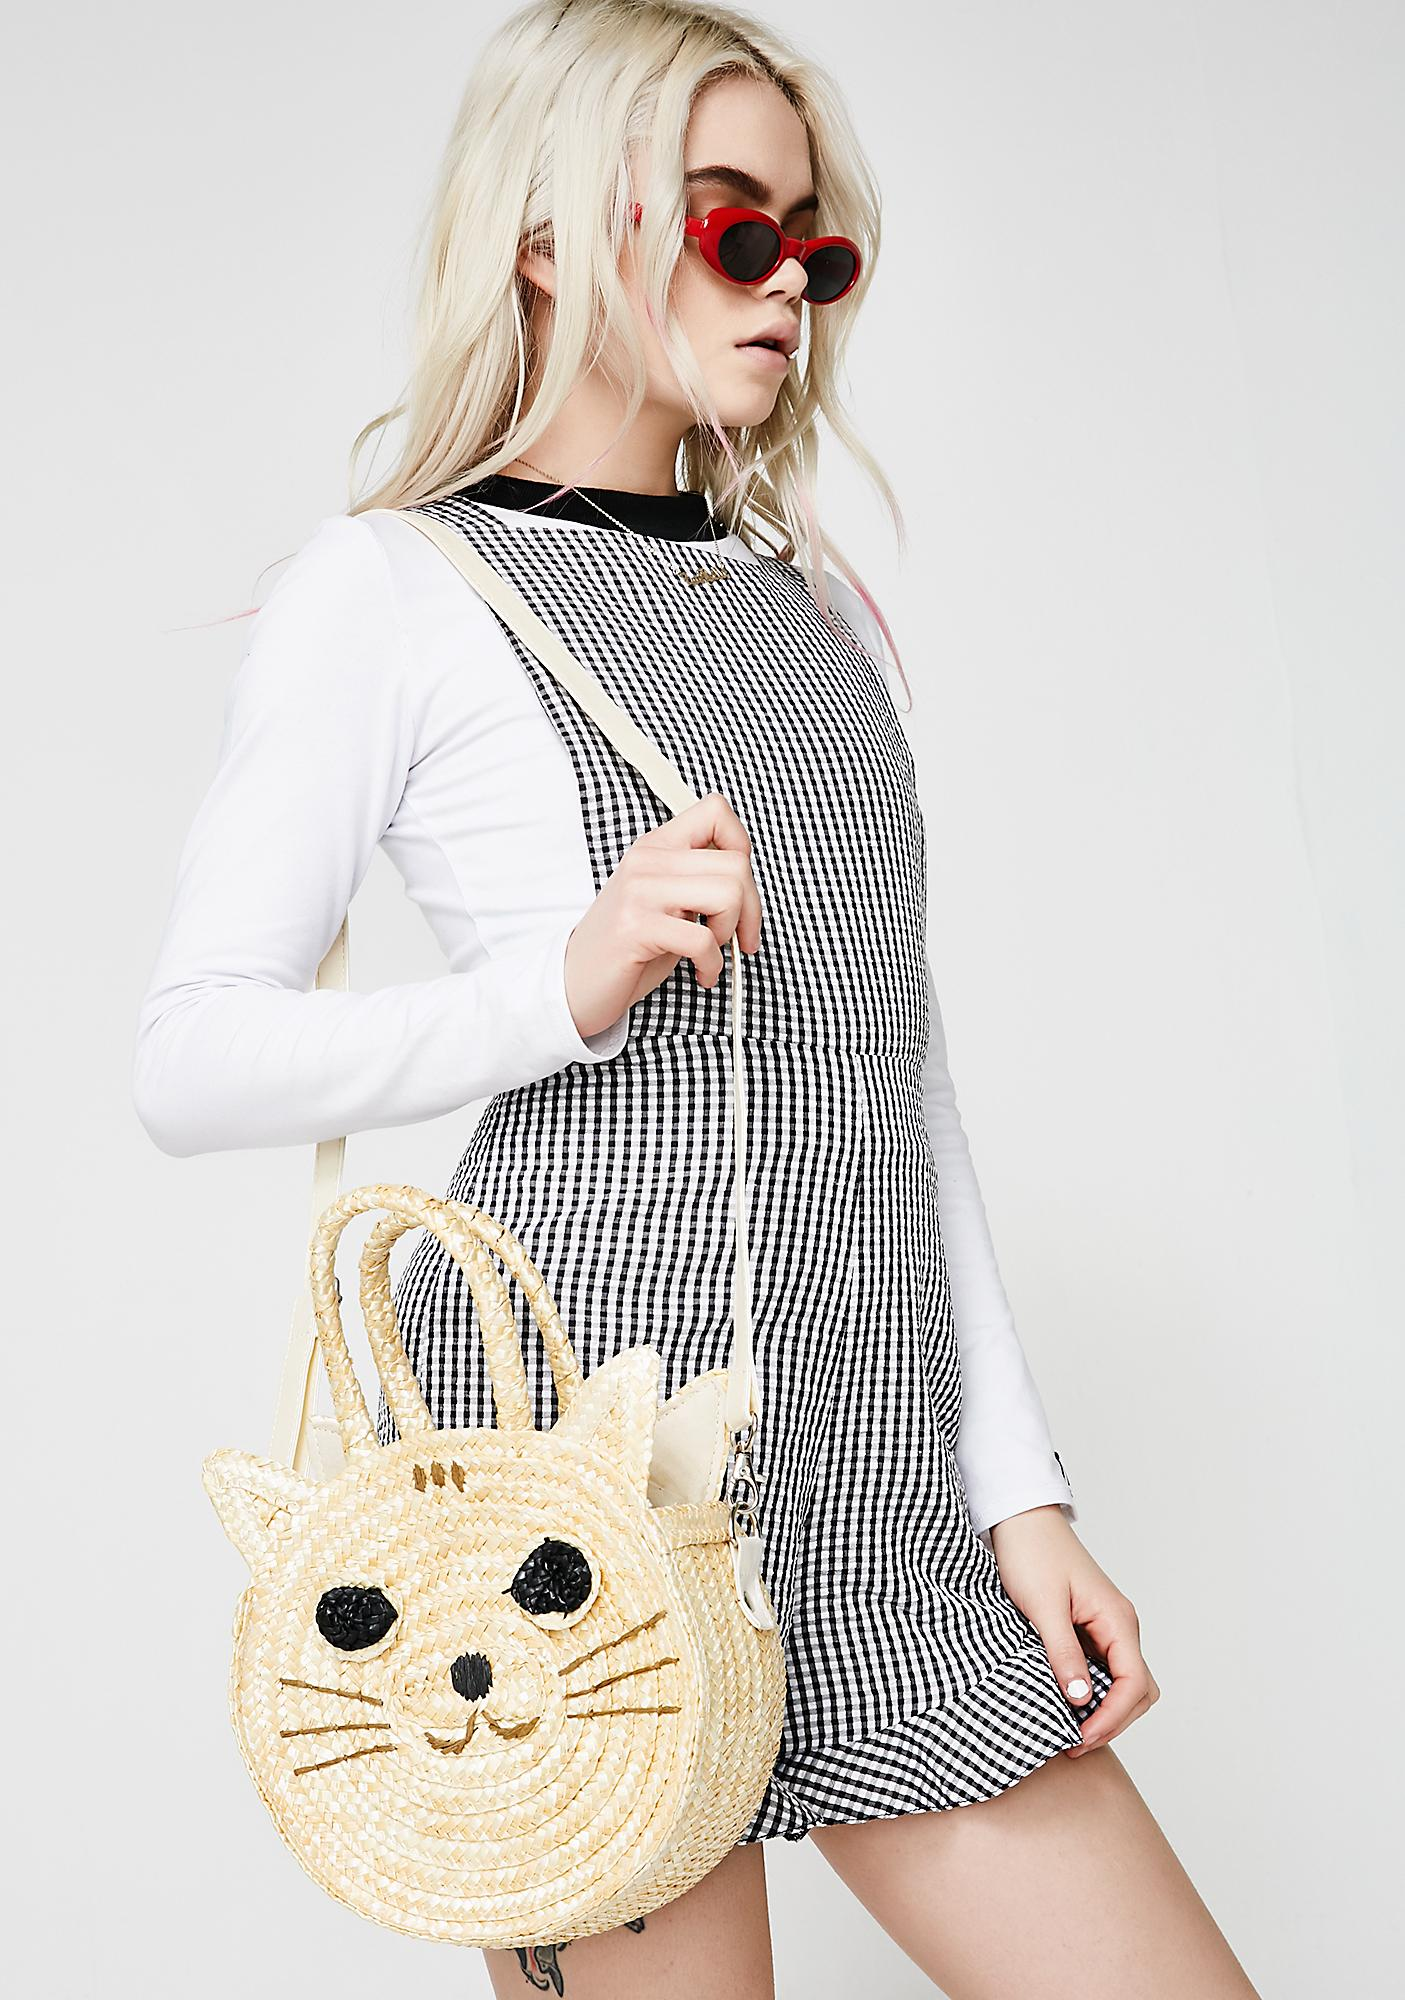 The Cat's Meow Bag